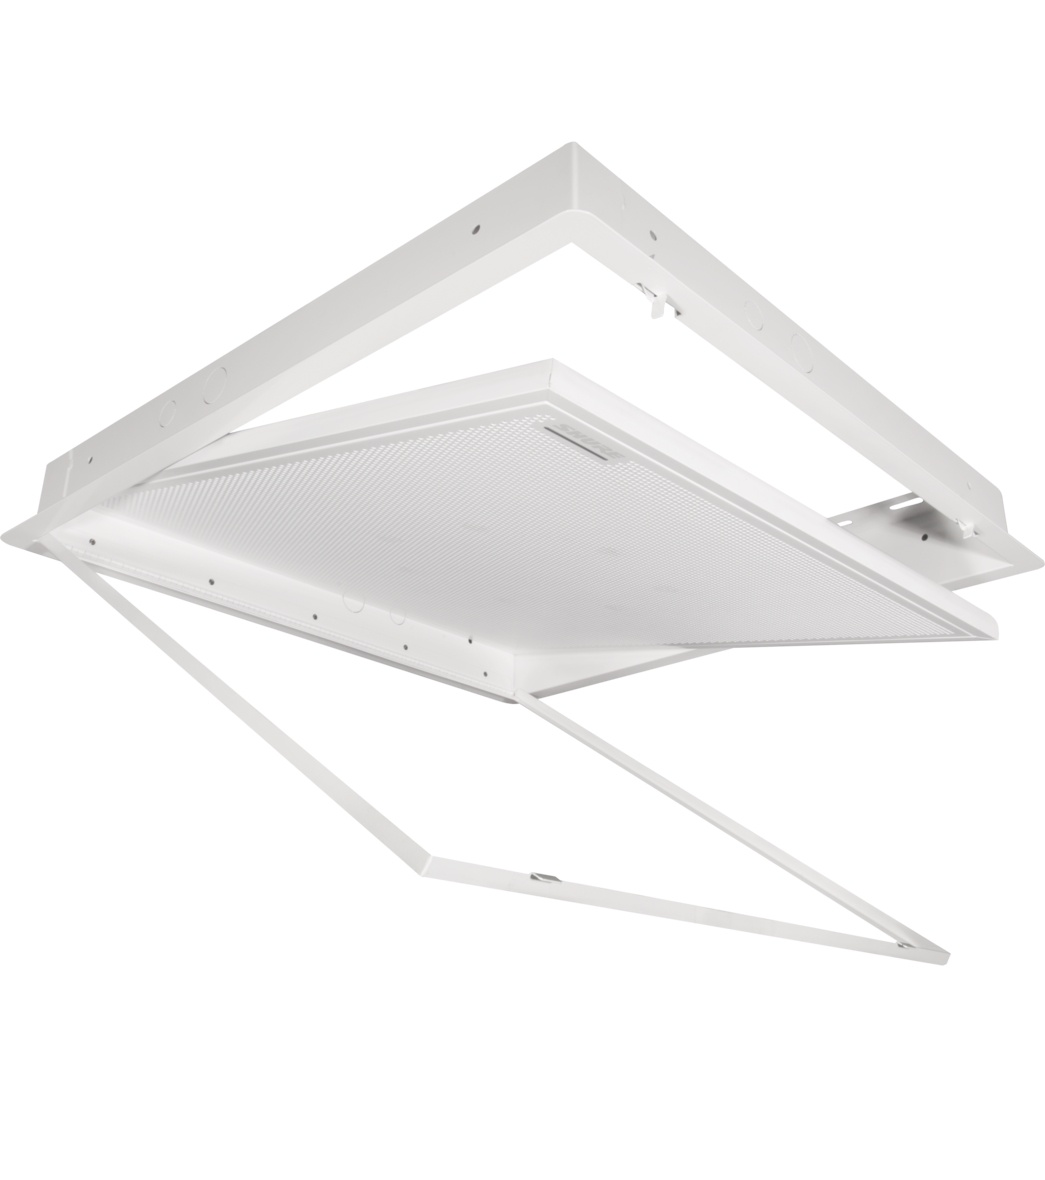 Shure A910-HCM Hard Ceiling Mount